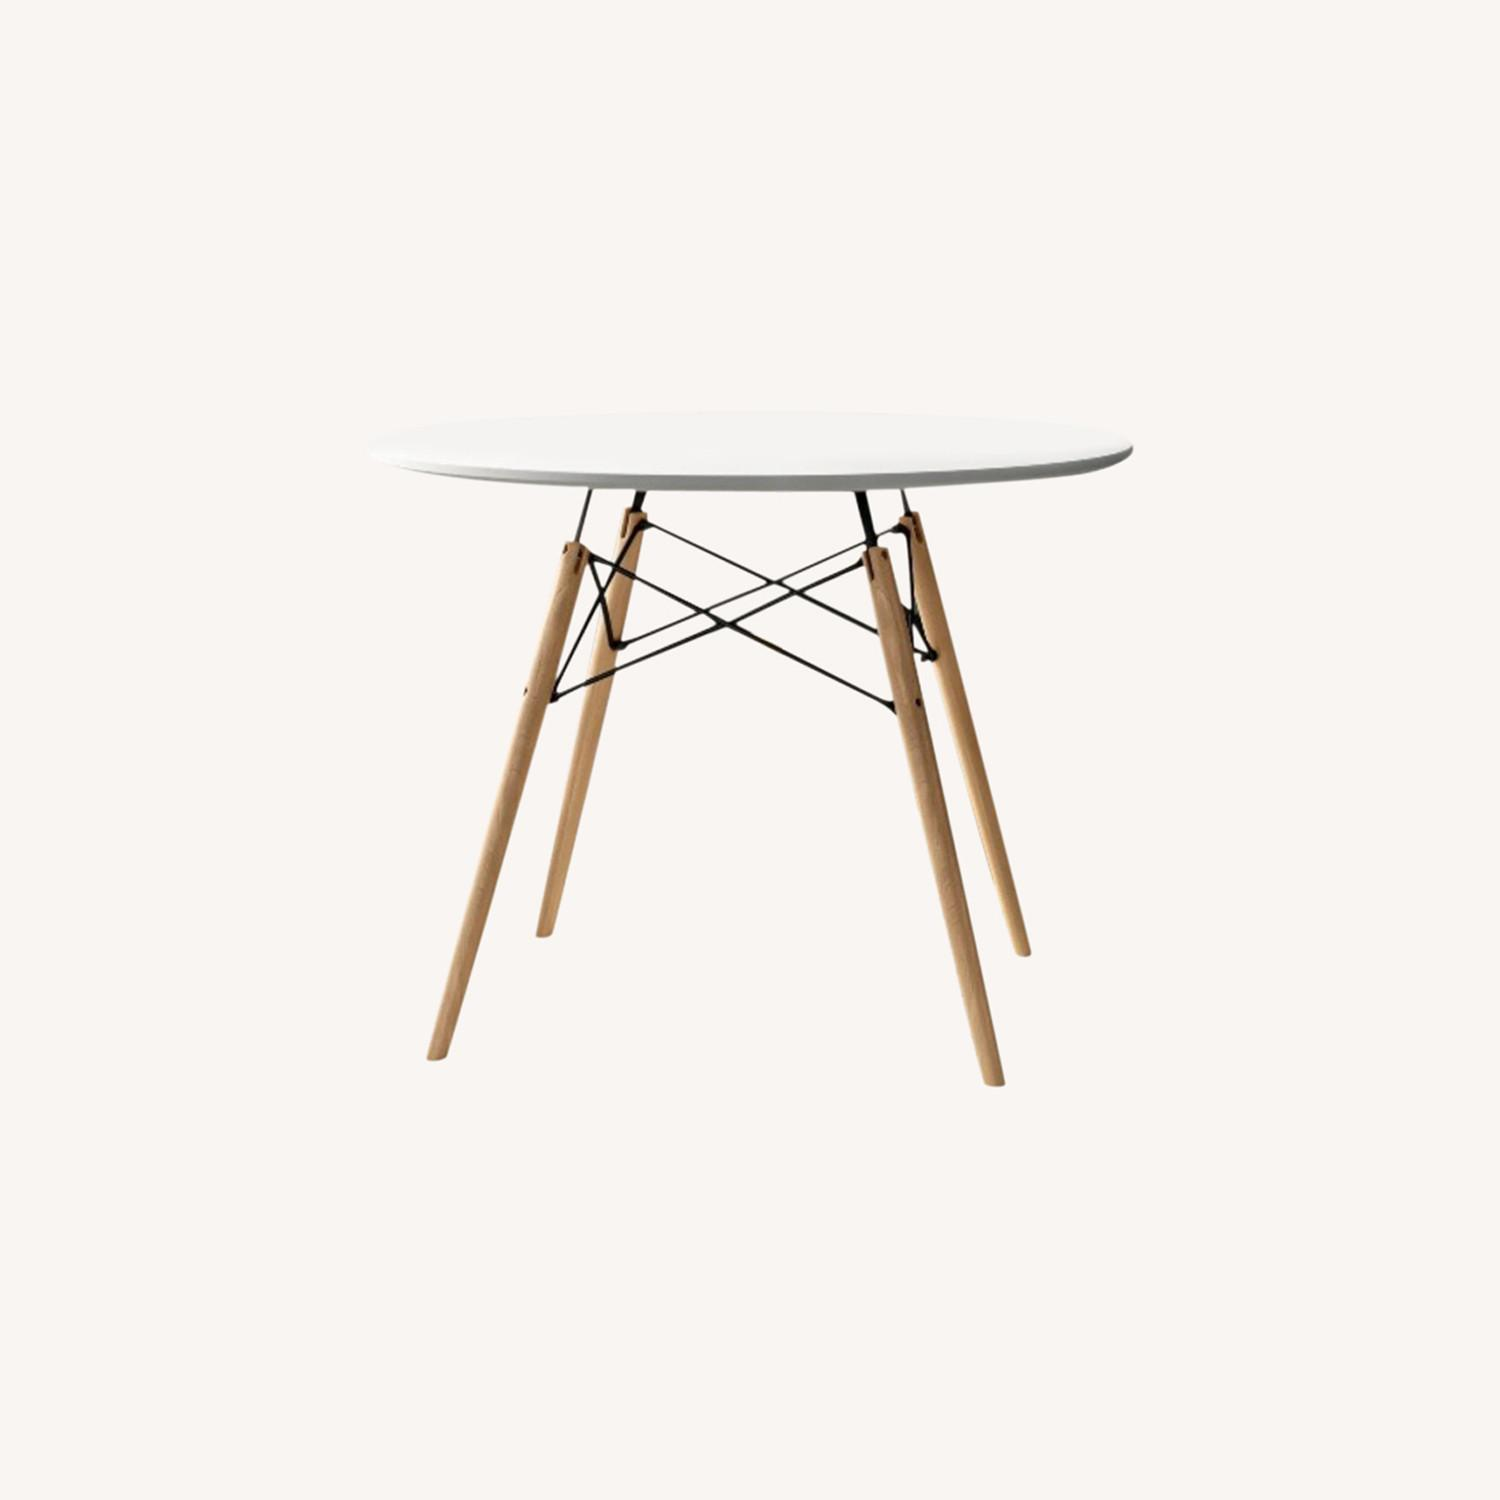 Wayfair Boardway Round Dining Room Table - image-0